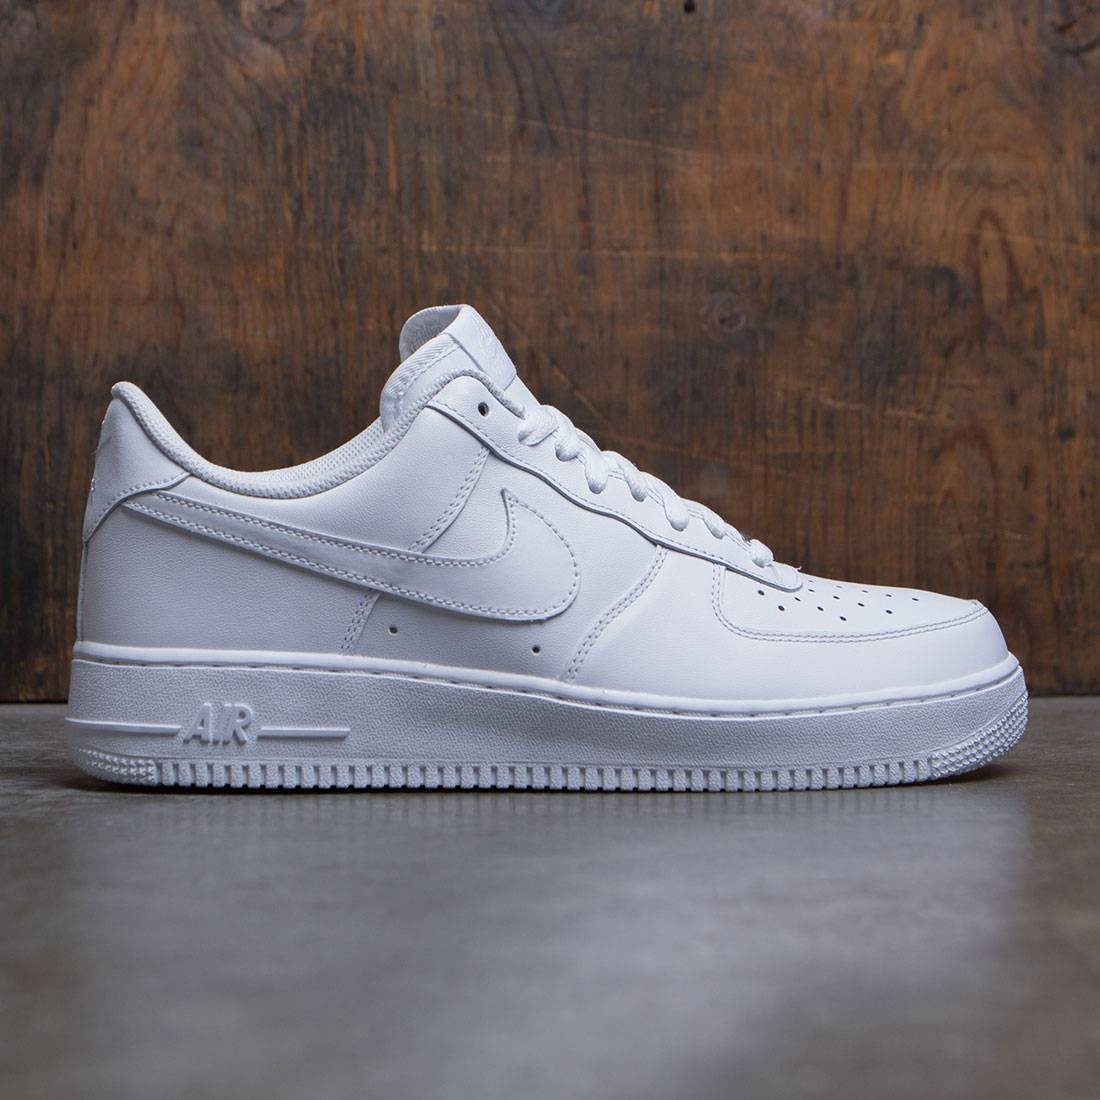 Nike Air Force 1 07 Low White White